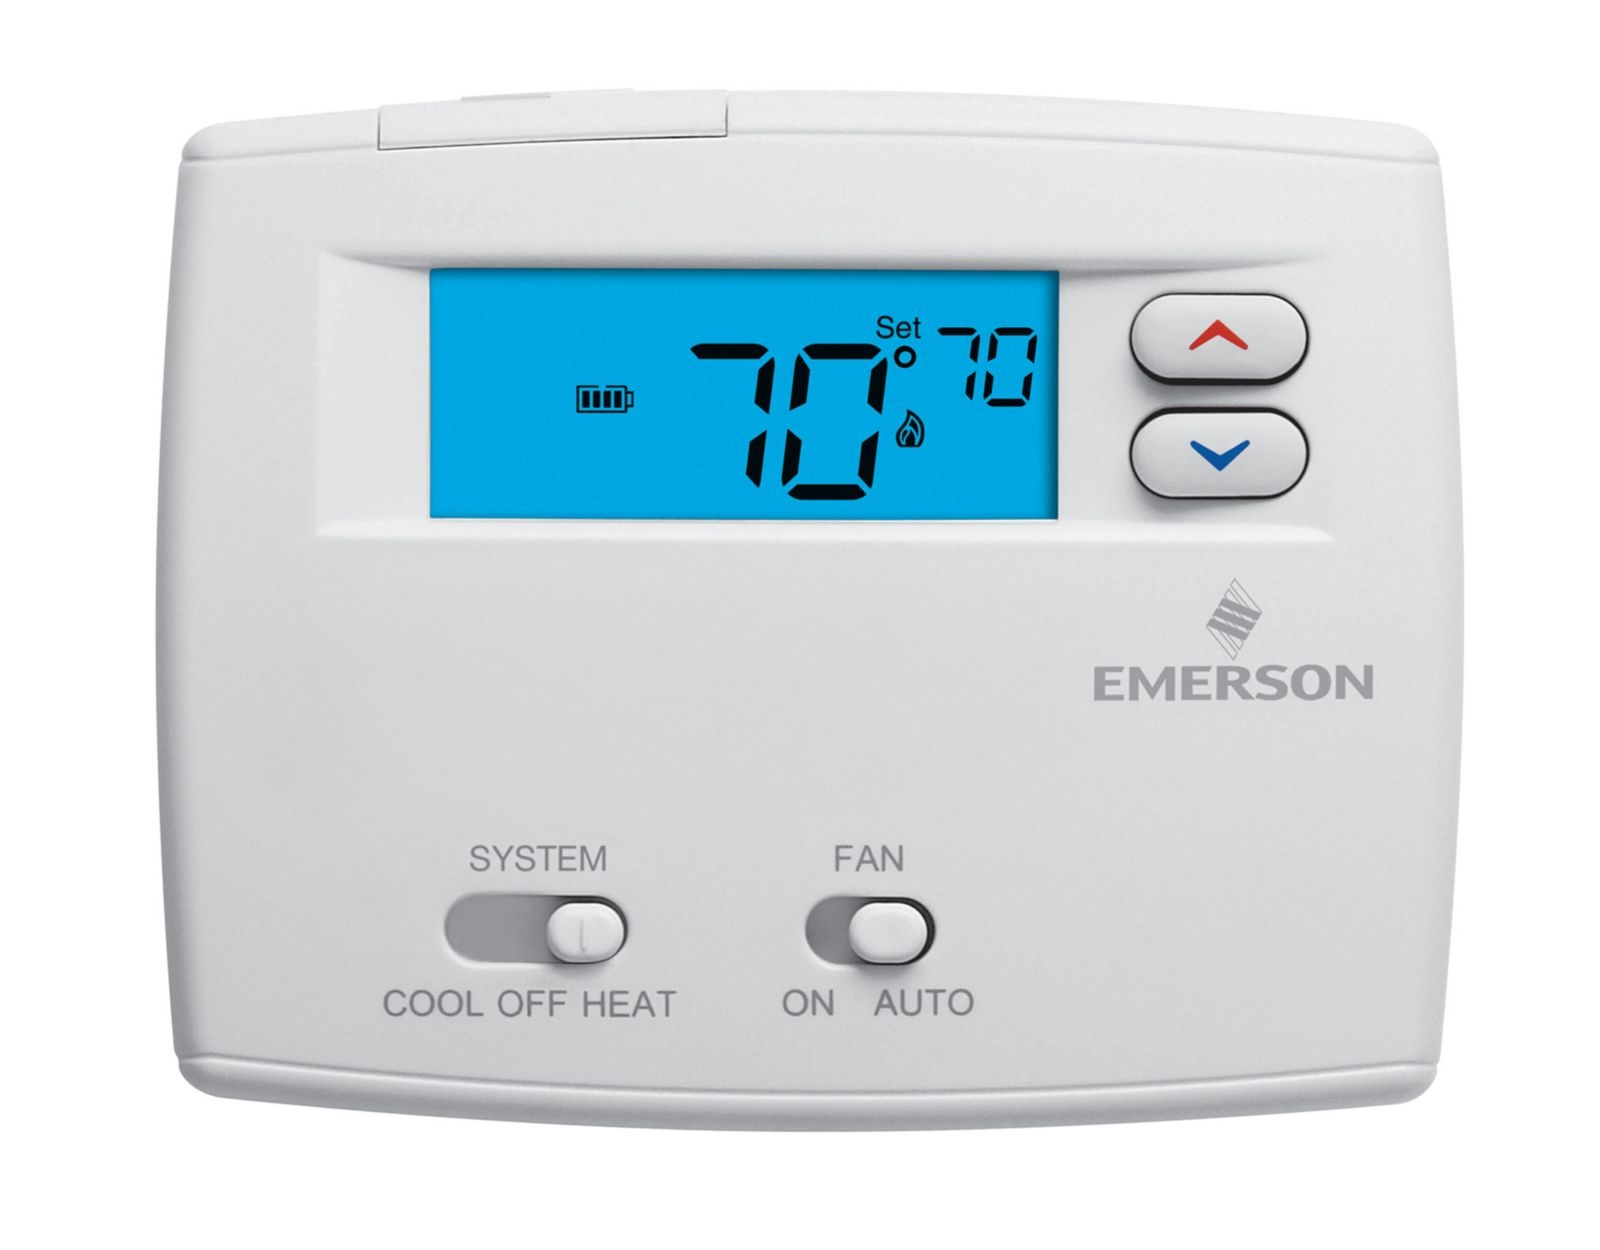 emerson digital thermostat wiring diagram Download-Emerson Climate Technologies 1f86 0244 Digital Non Programmable Wiring Diagram Emerson thermostat Wiring Diagram Inspirational 3-m